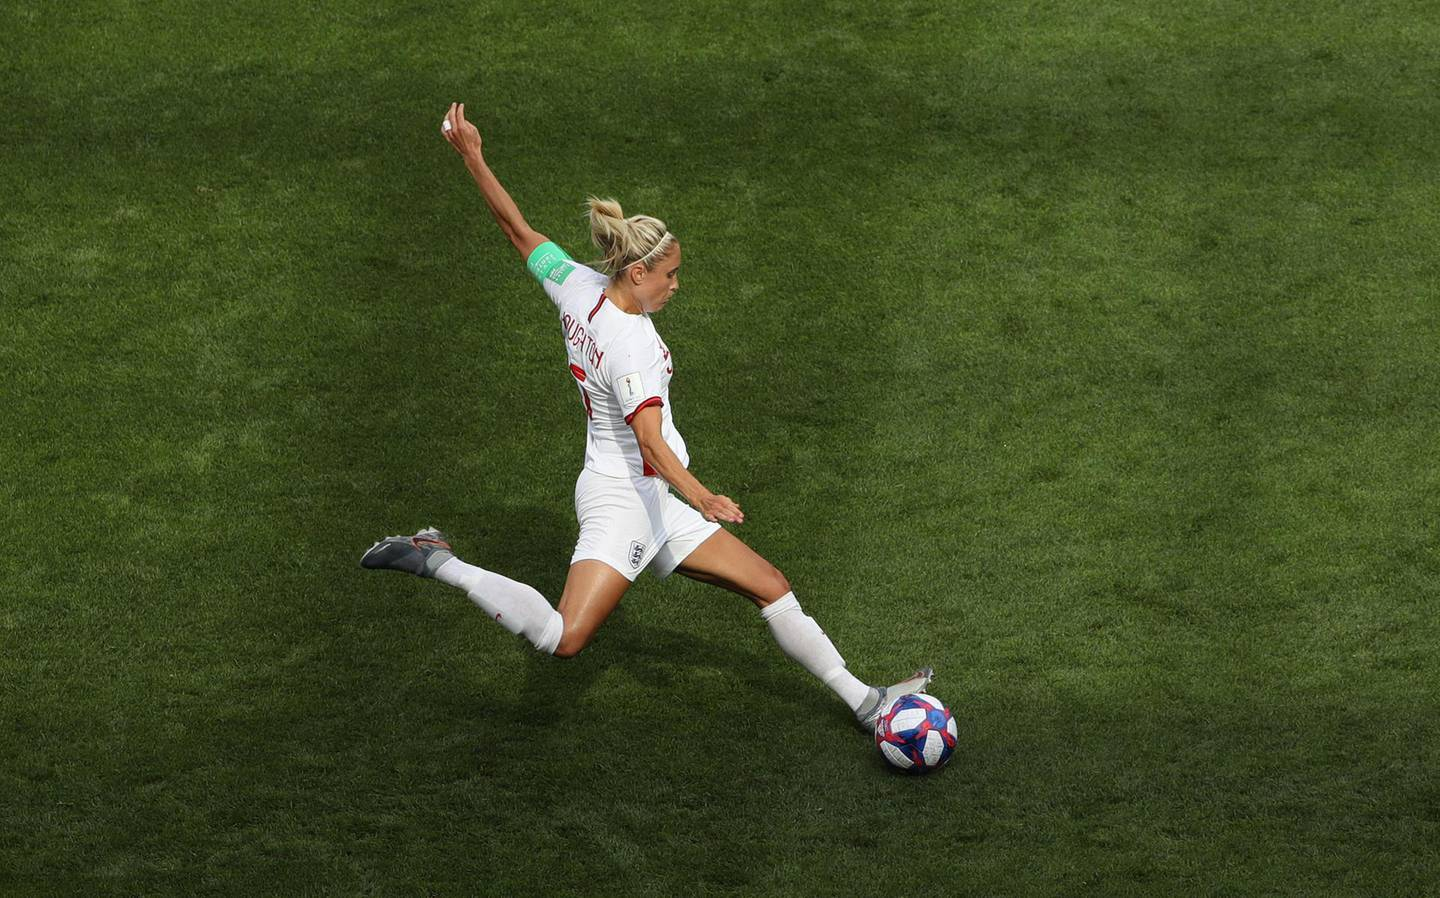 VALENCIENNES, FRANCE - JUNE 23: Steph Houghton of England in action during the 2019 FIFA Women's World Cup France Round Of 16 match between England and Cameroon at Stade du Hainaut on June 23, 2019 in Valenciennes, France. (Photo by Robert Cianflone/Getty Images)